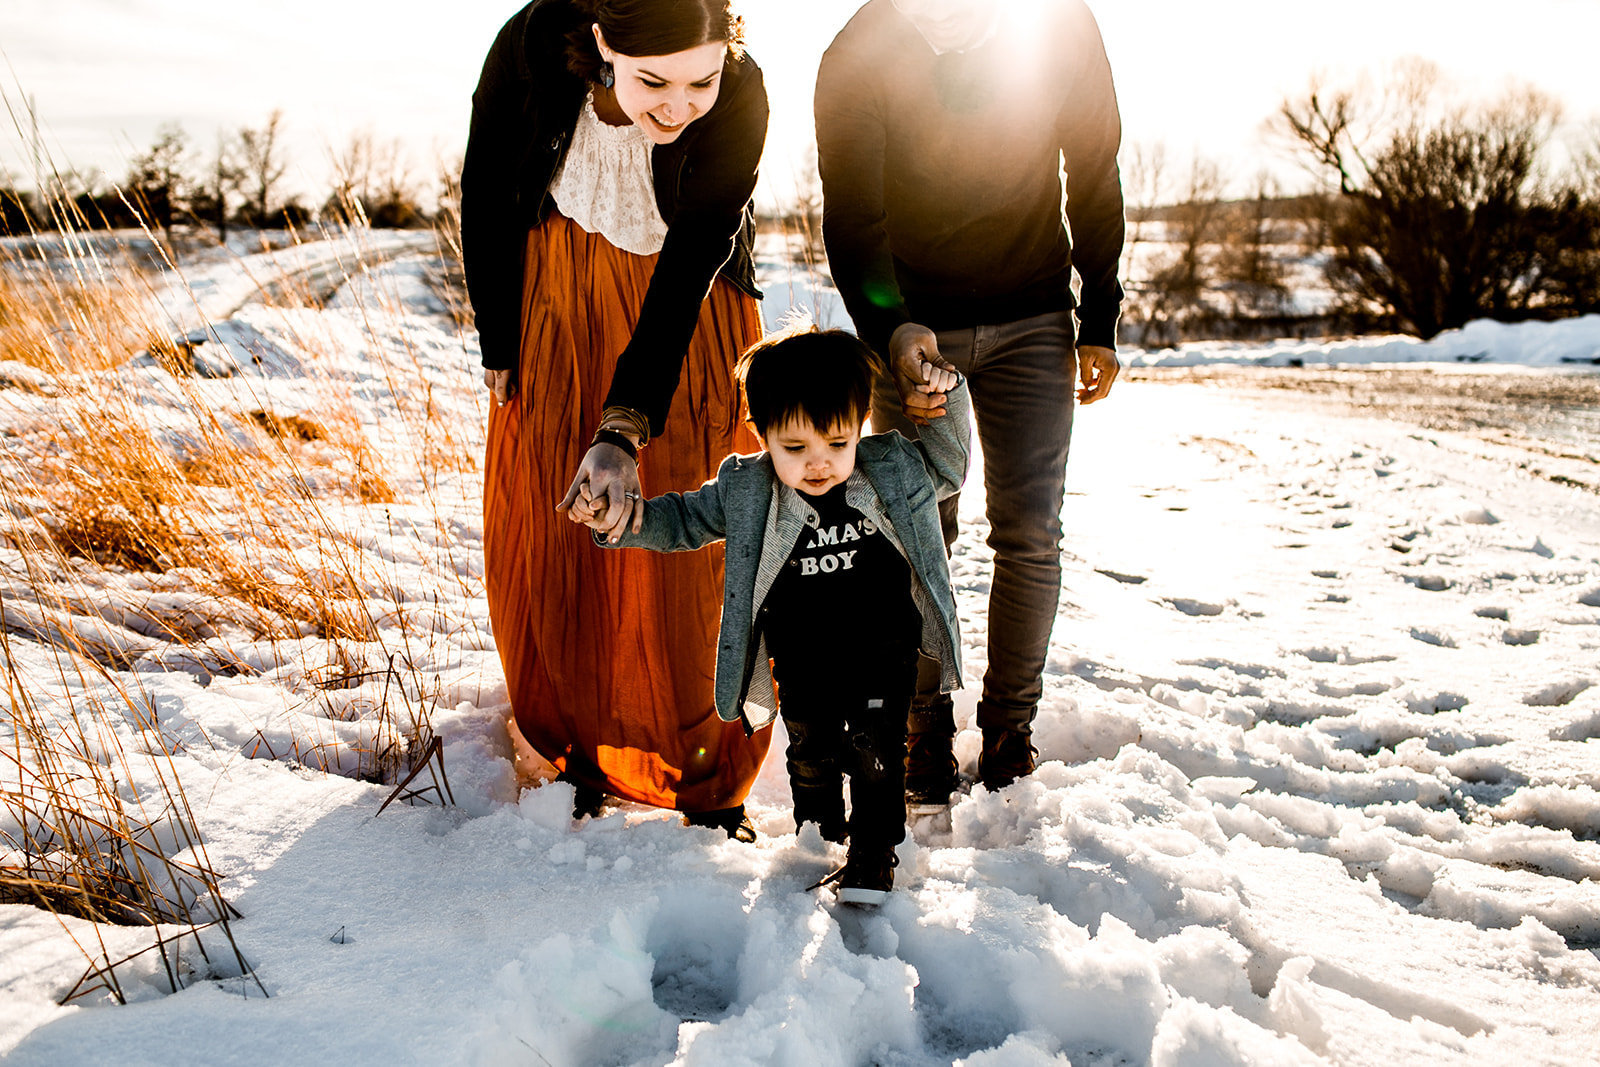 Des Moines Iowa lifestyle family photograph in winter. Child walking with parents.